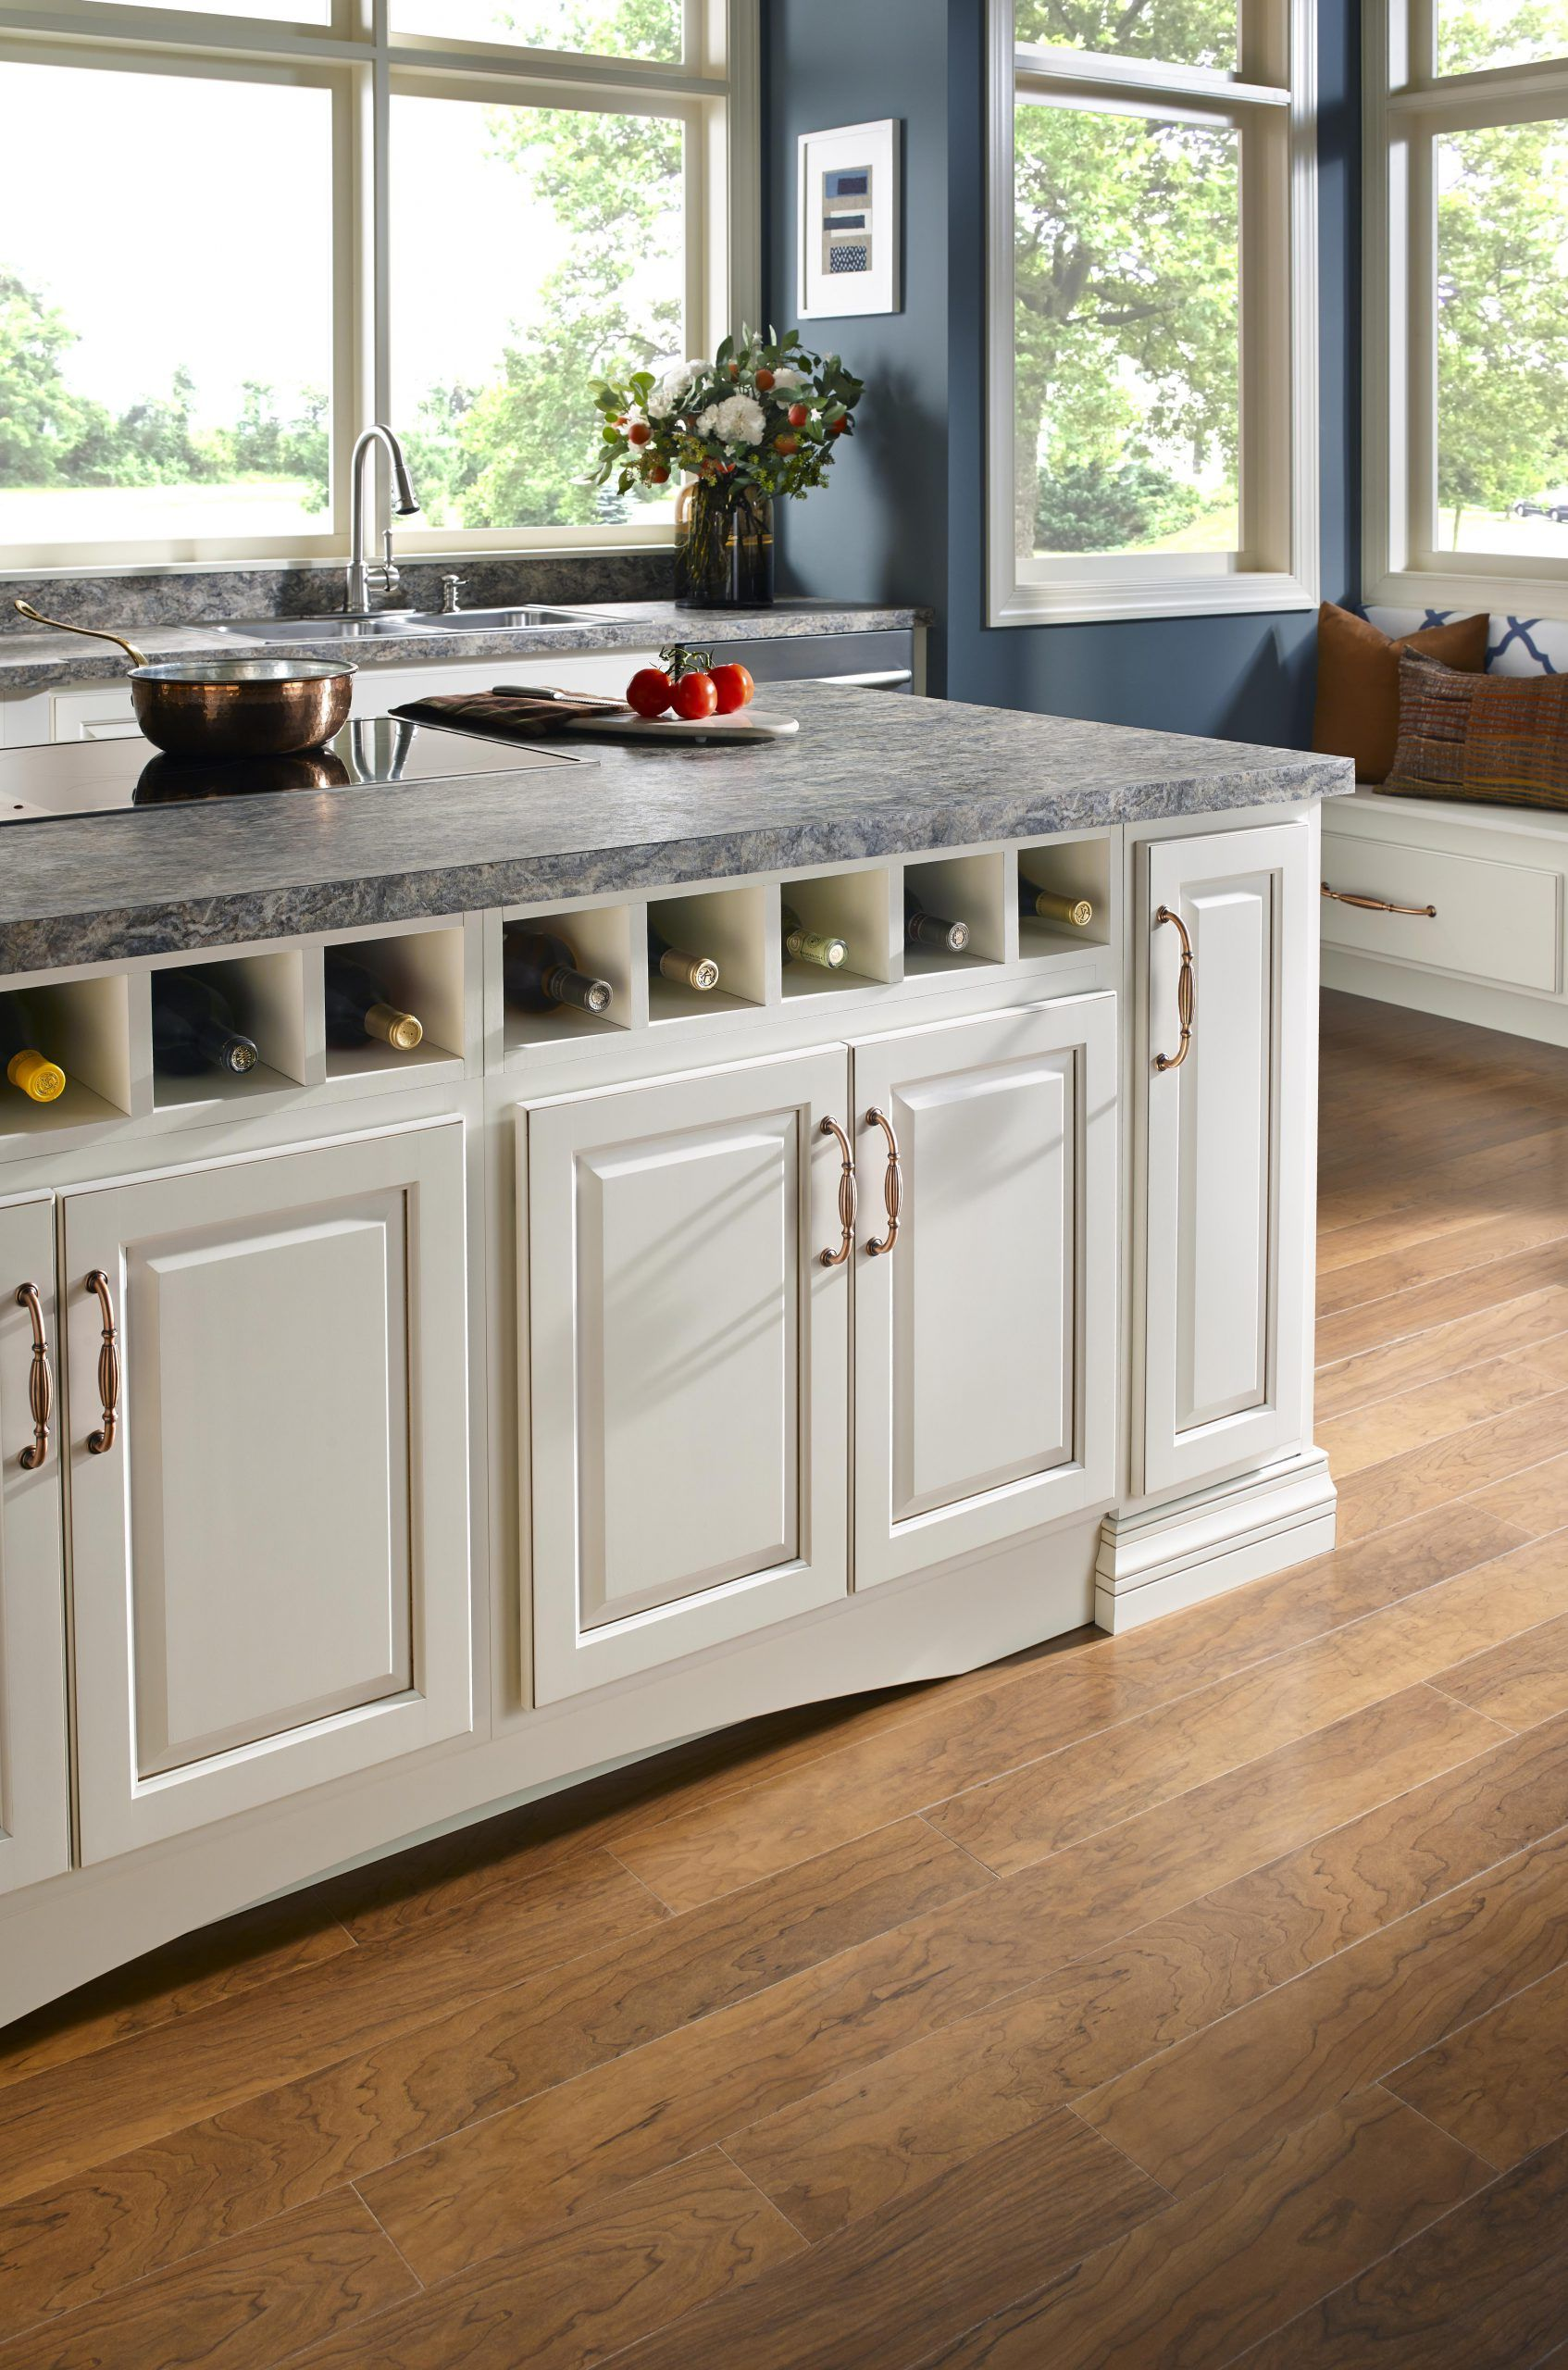 style spotlight amerock hardware the hardware hut amerock kitchen and bath design design on kitchen cabinets no handles id=30152